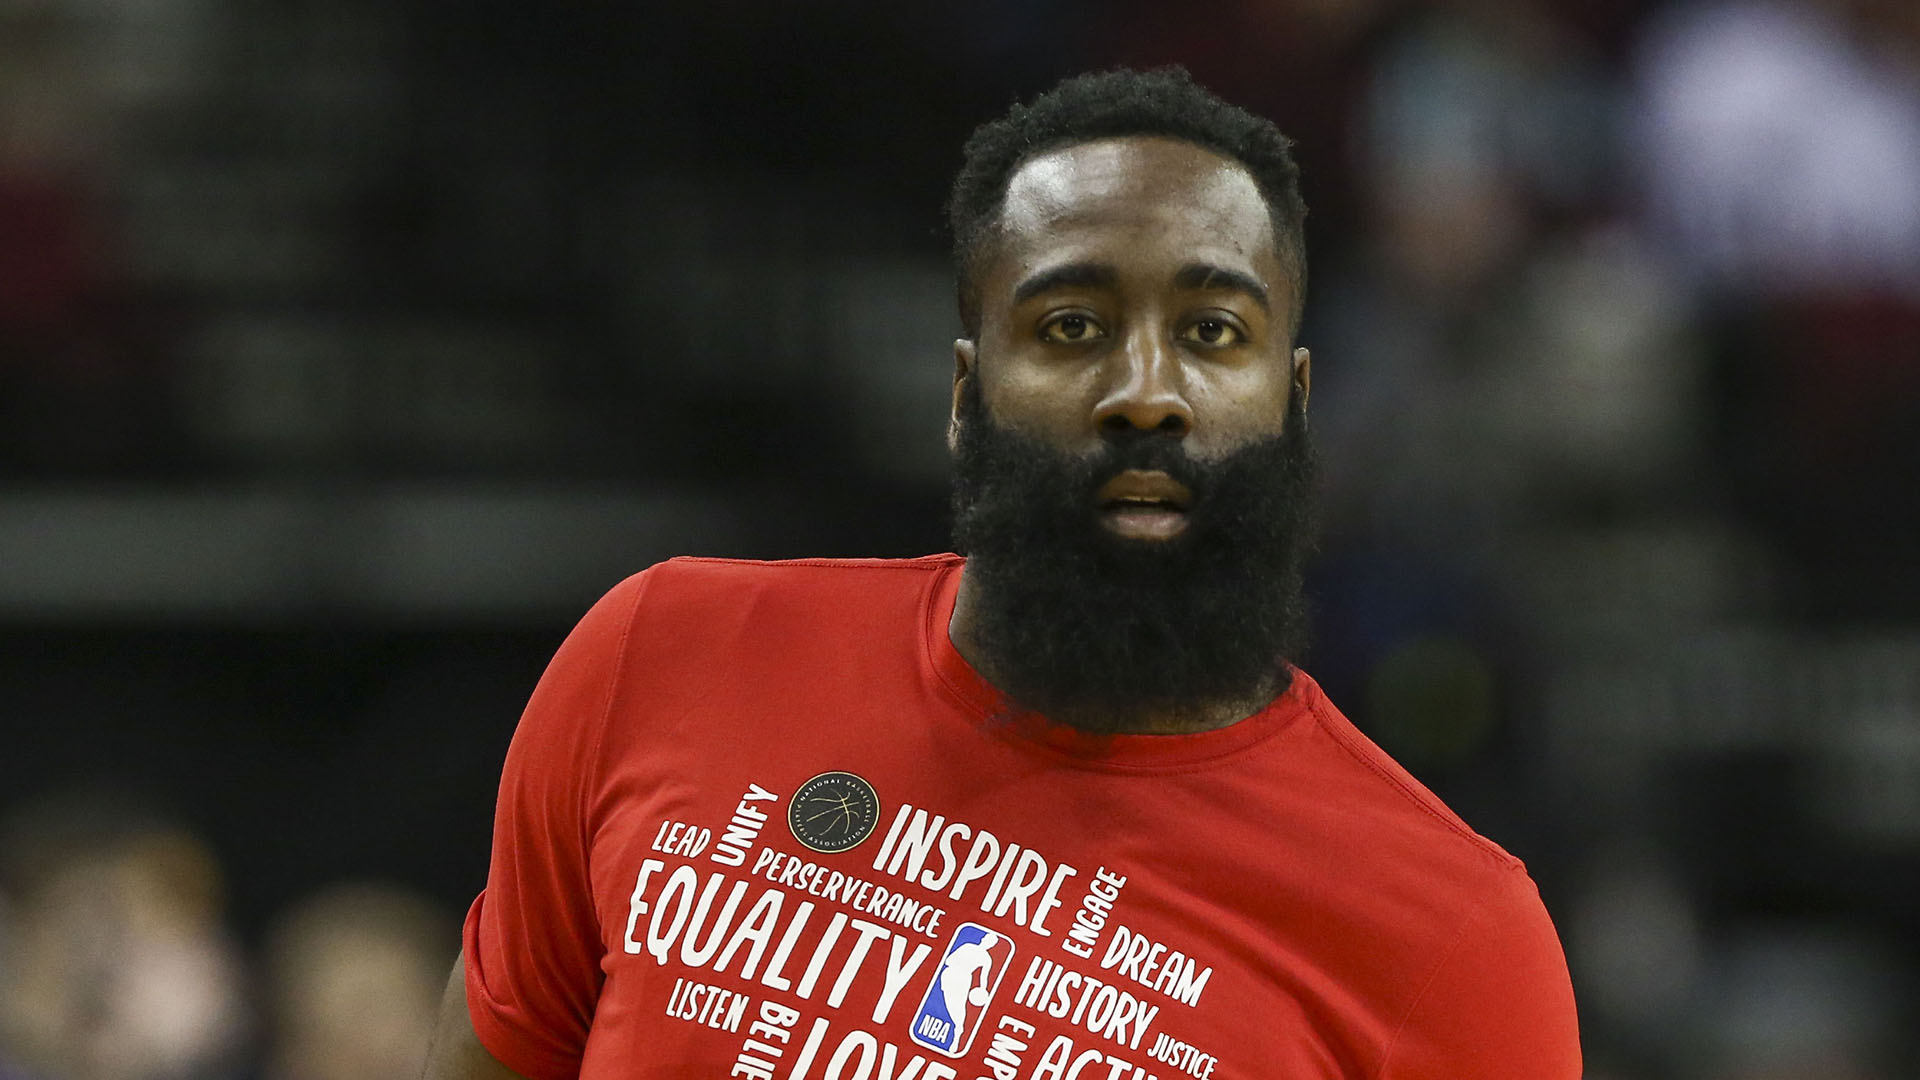 Harden Says He Wasn't Disrespectful To Rockets